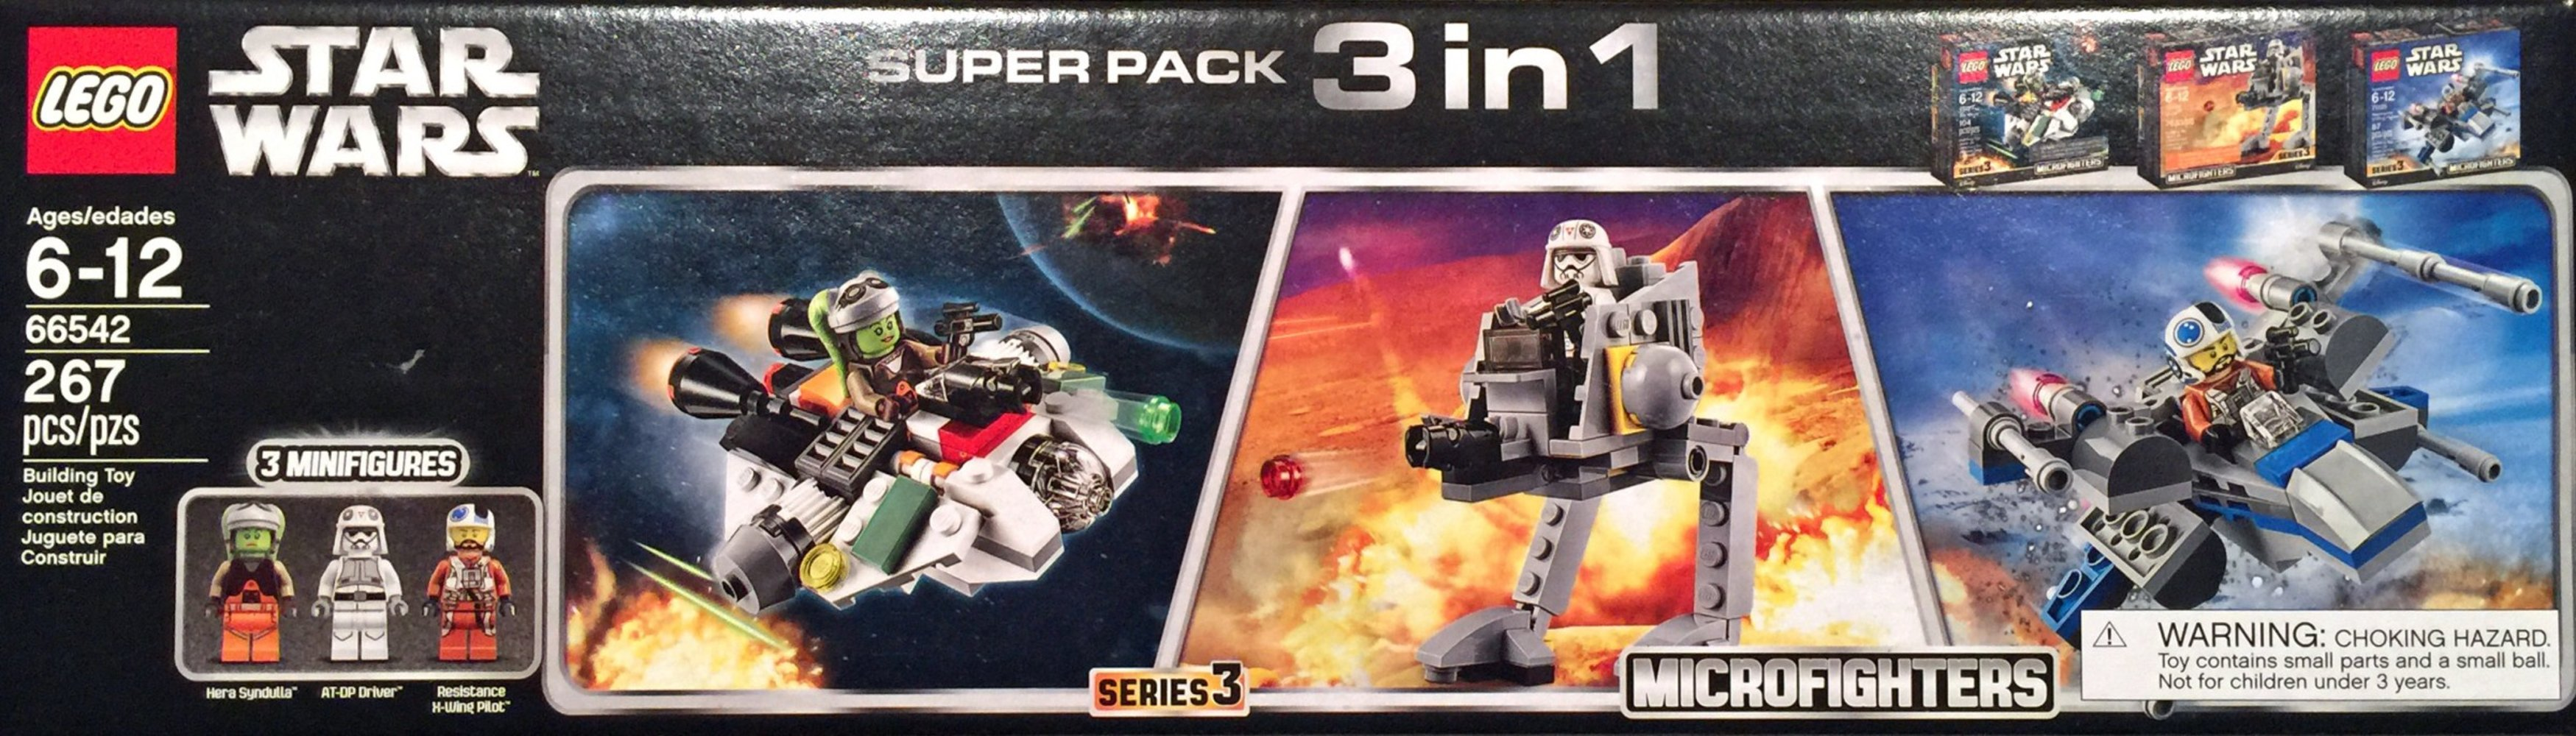 Star Wars Microfighters Super Pack 3 in 1